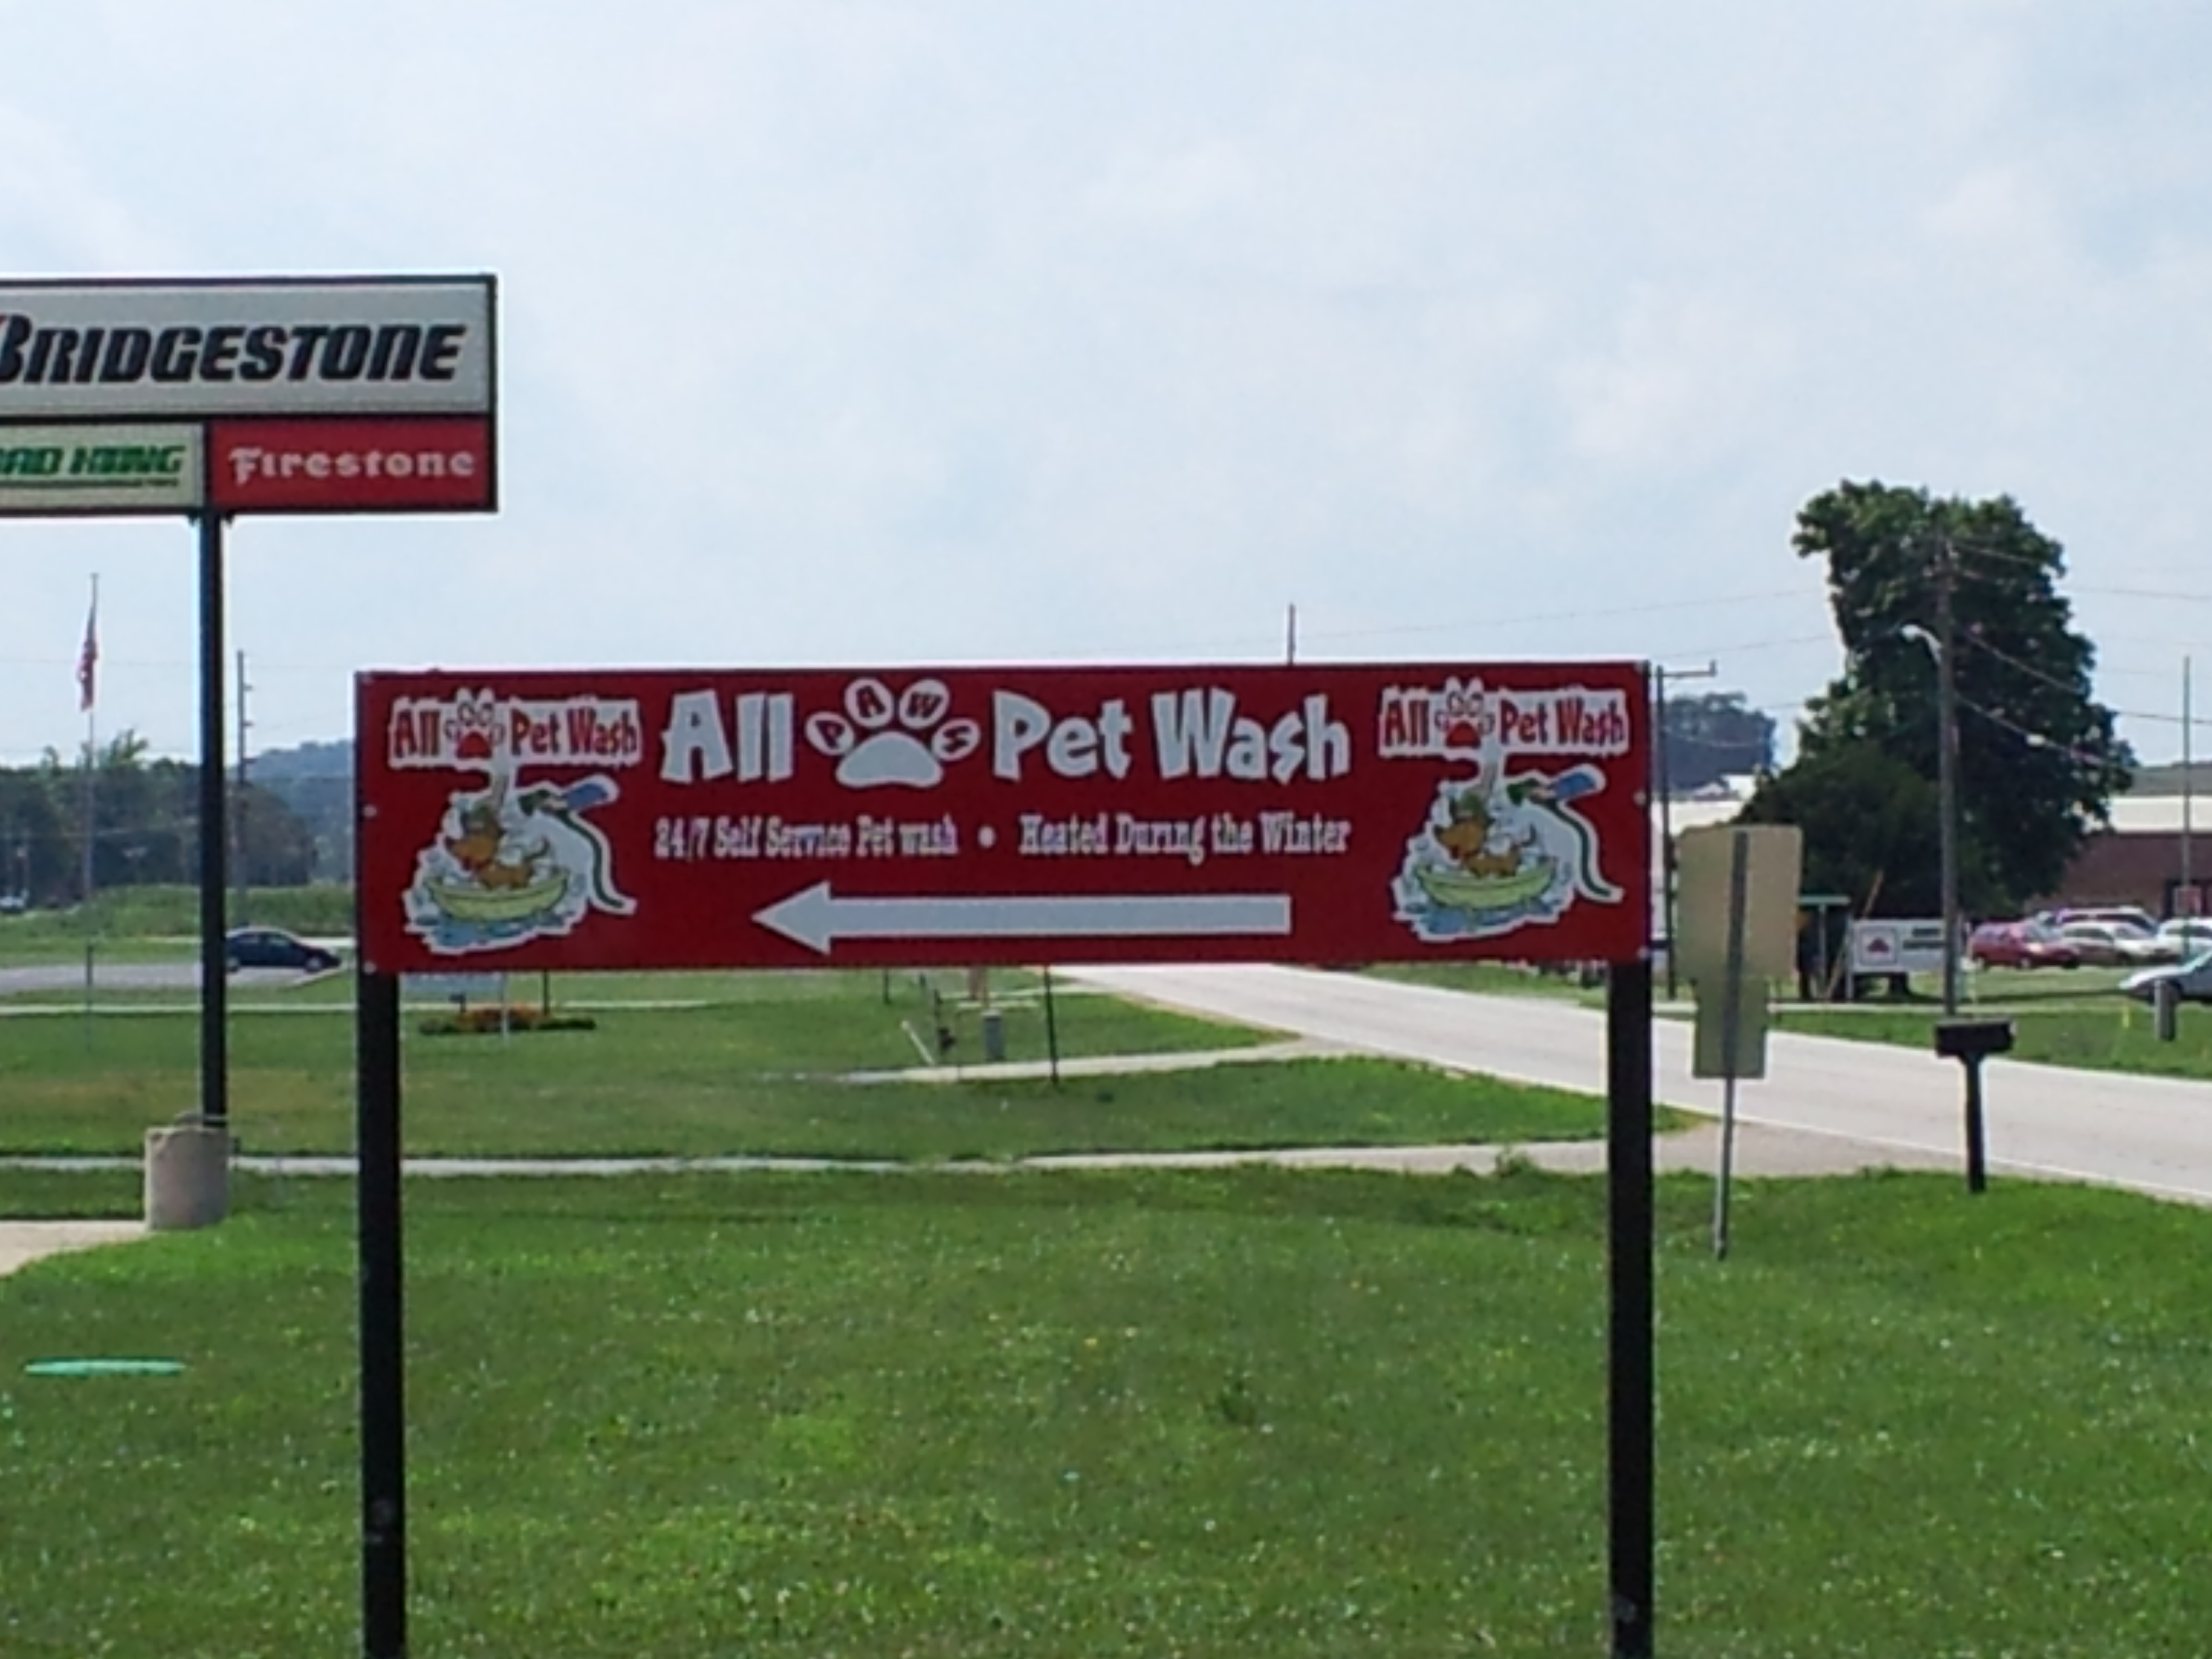 Car wash pet wash dog bath stations pet wash installations all all paws pet wash solutioingenieria Images